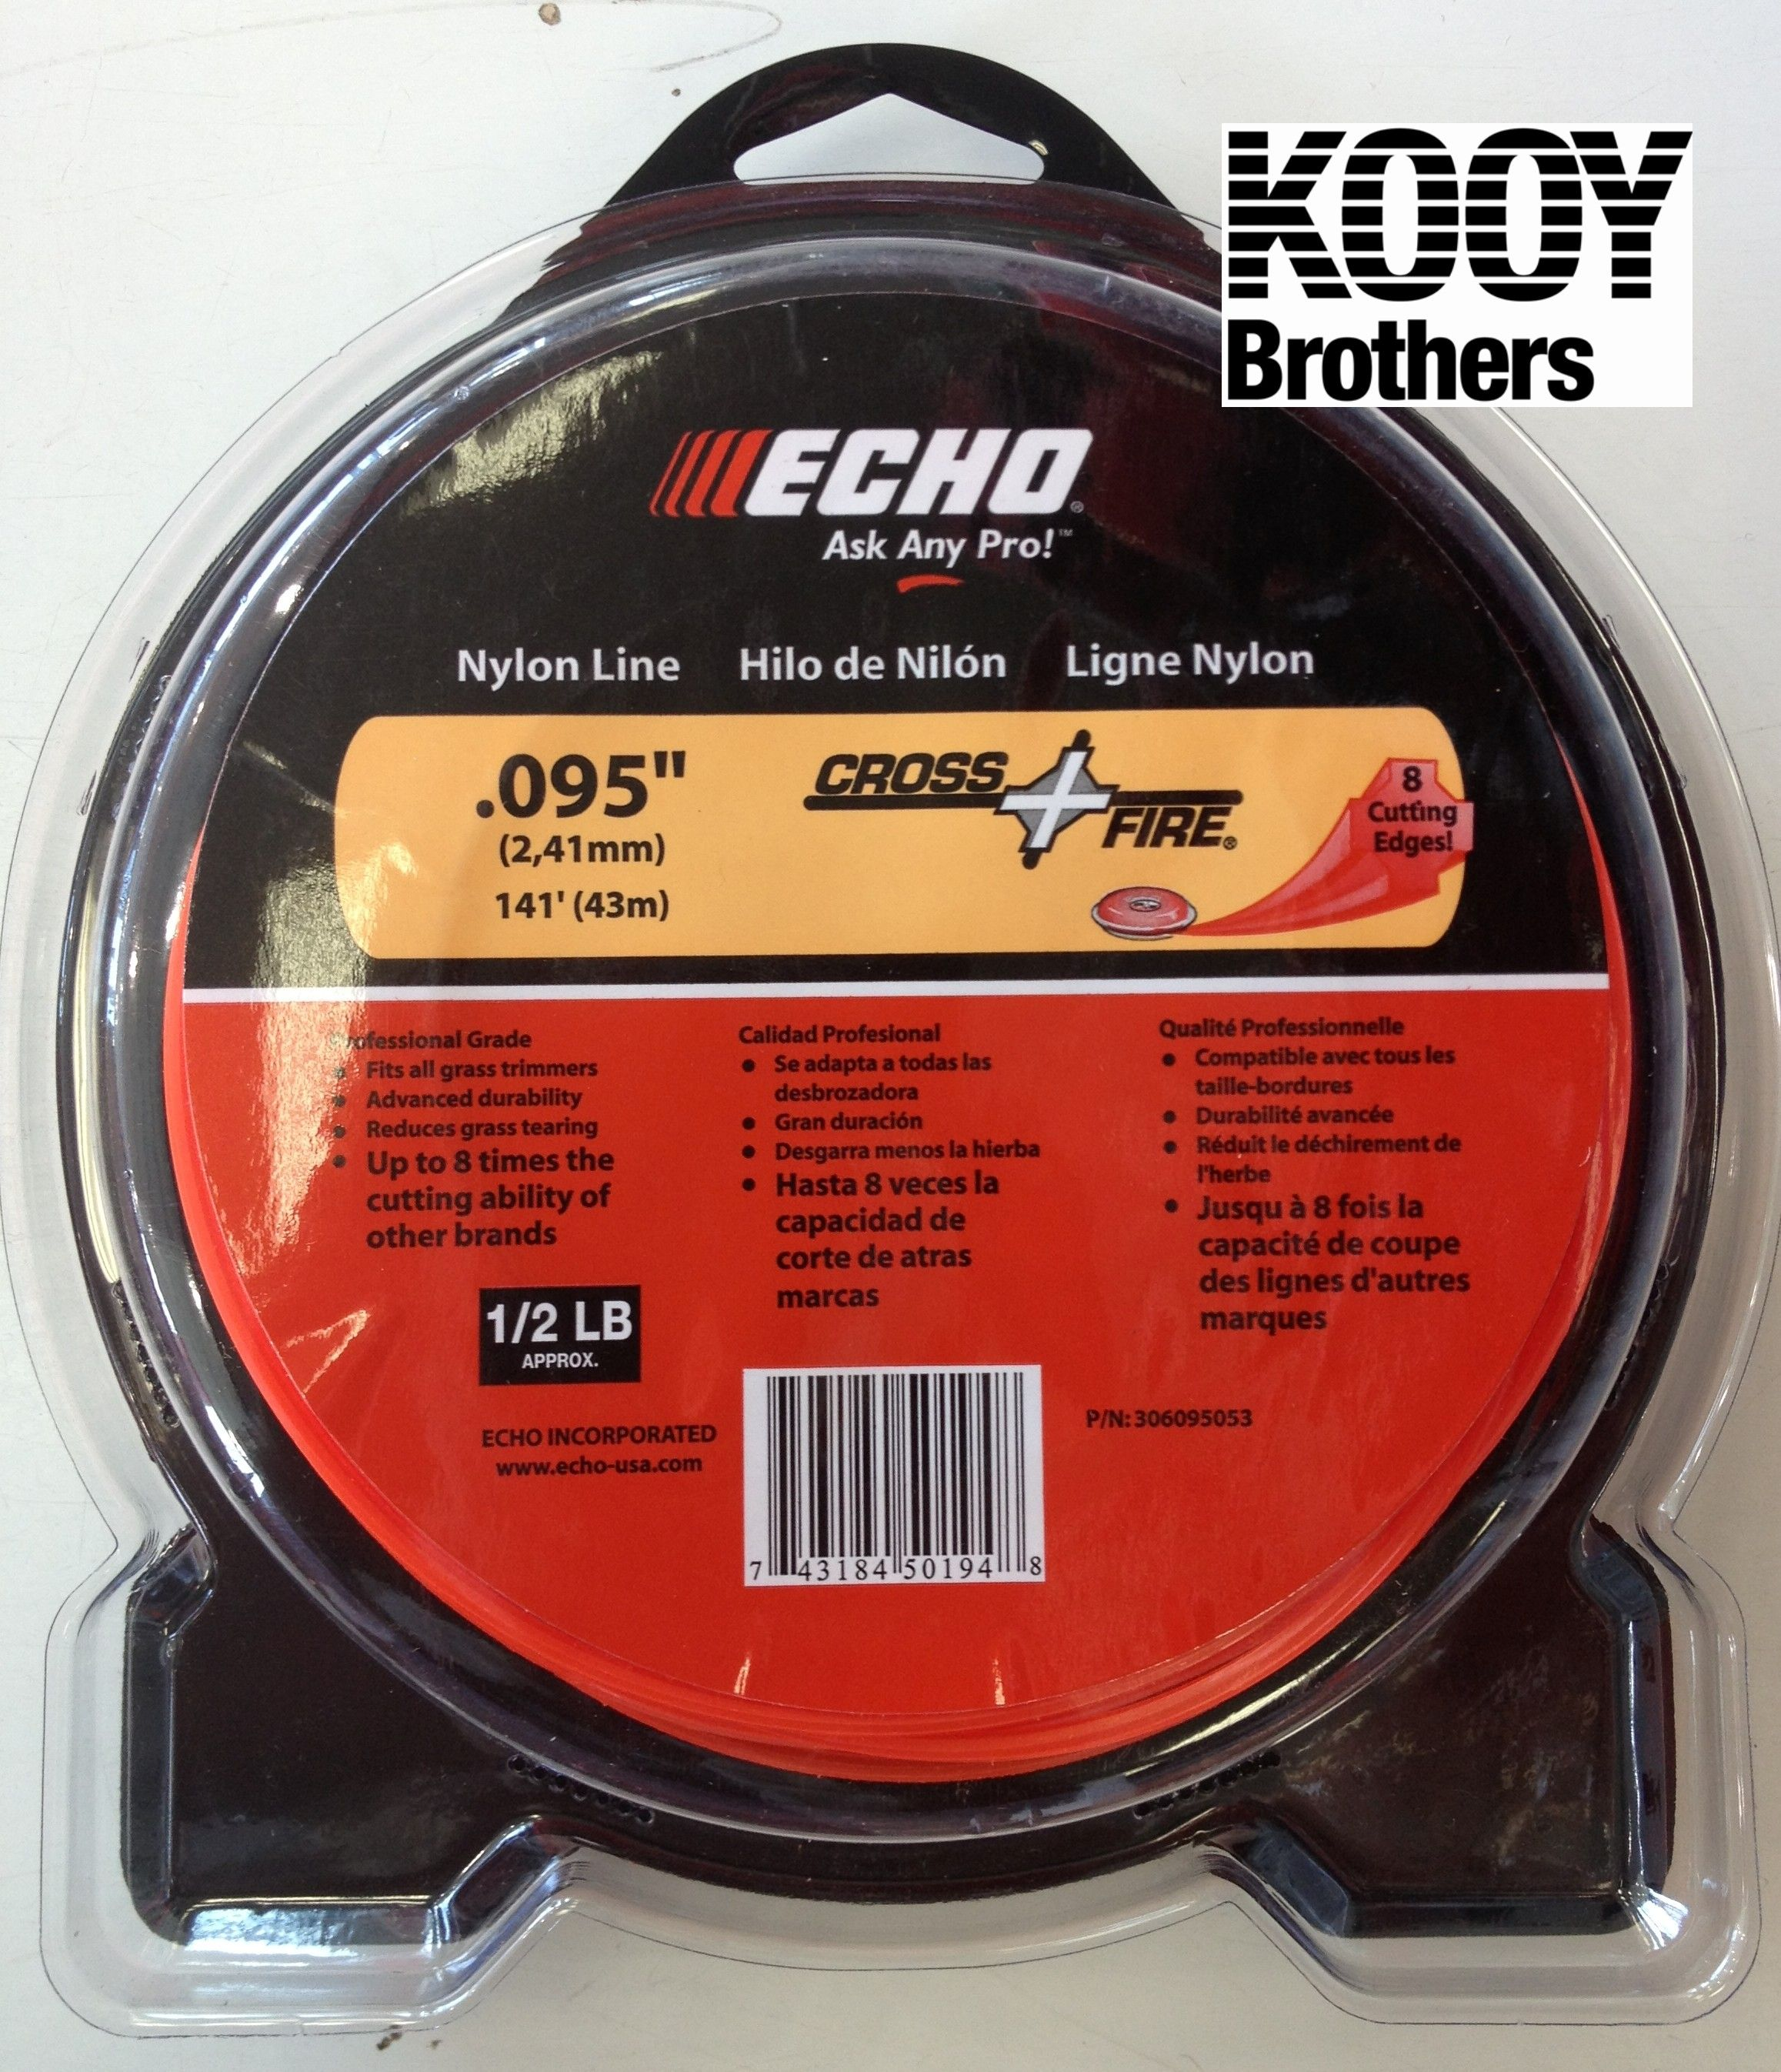 ECHO .095 Replacement Trimmer Line .5lb roll